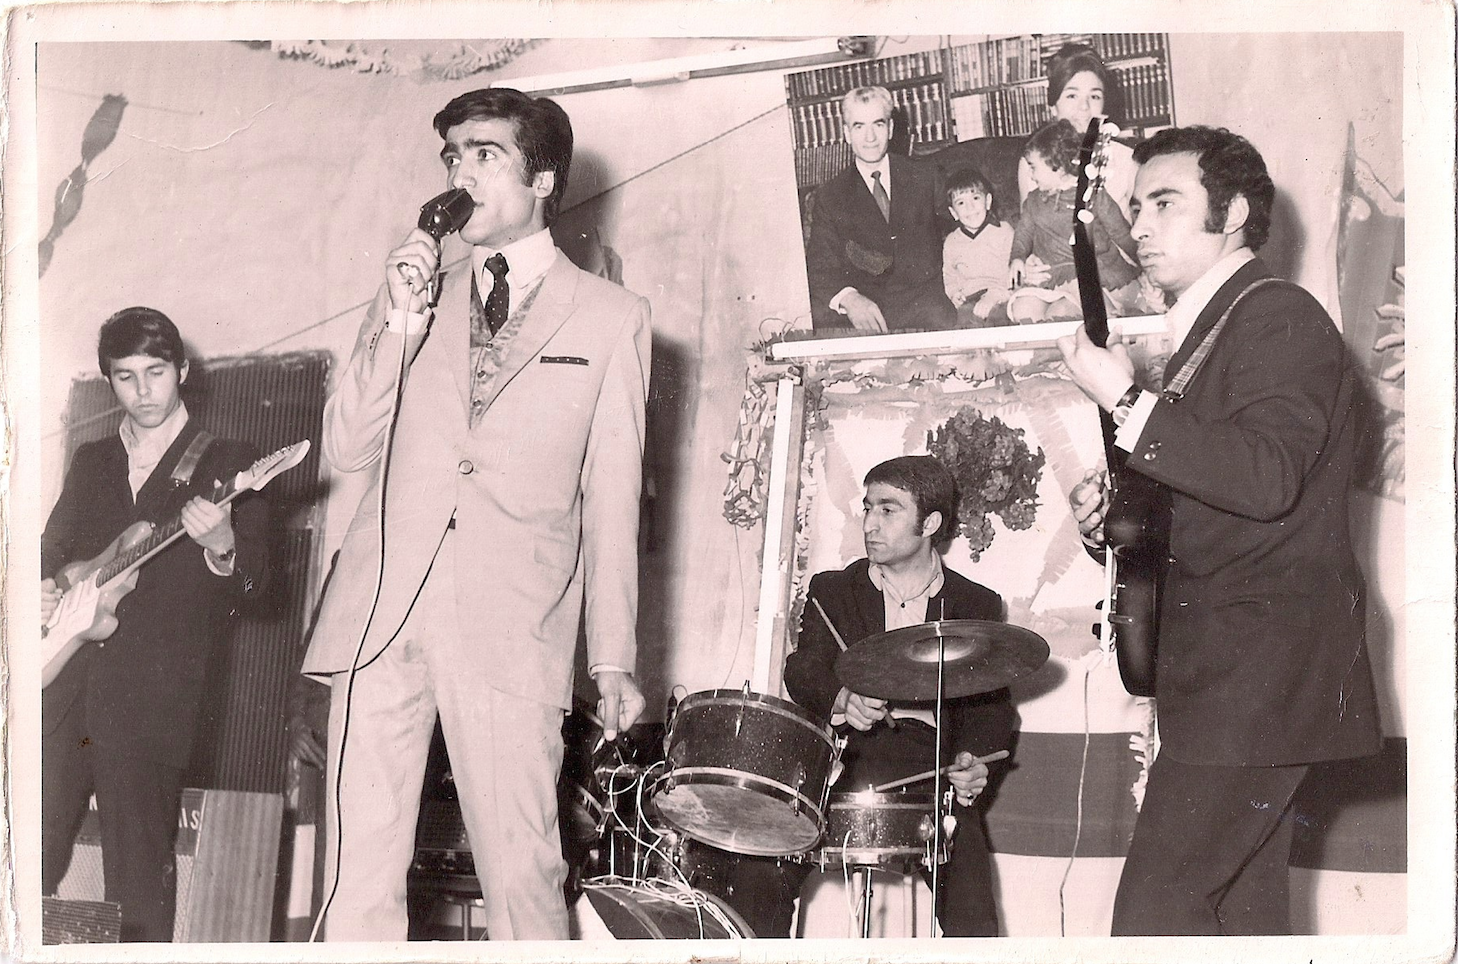 Joe's father (middle) playing his only rock show with his still best friend on guitar (right). Despite how it may look, the performance was apparently awful. In the background photo is the Shah with the royal family.